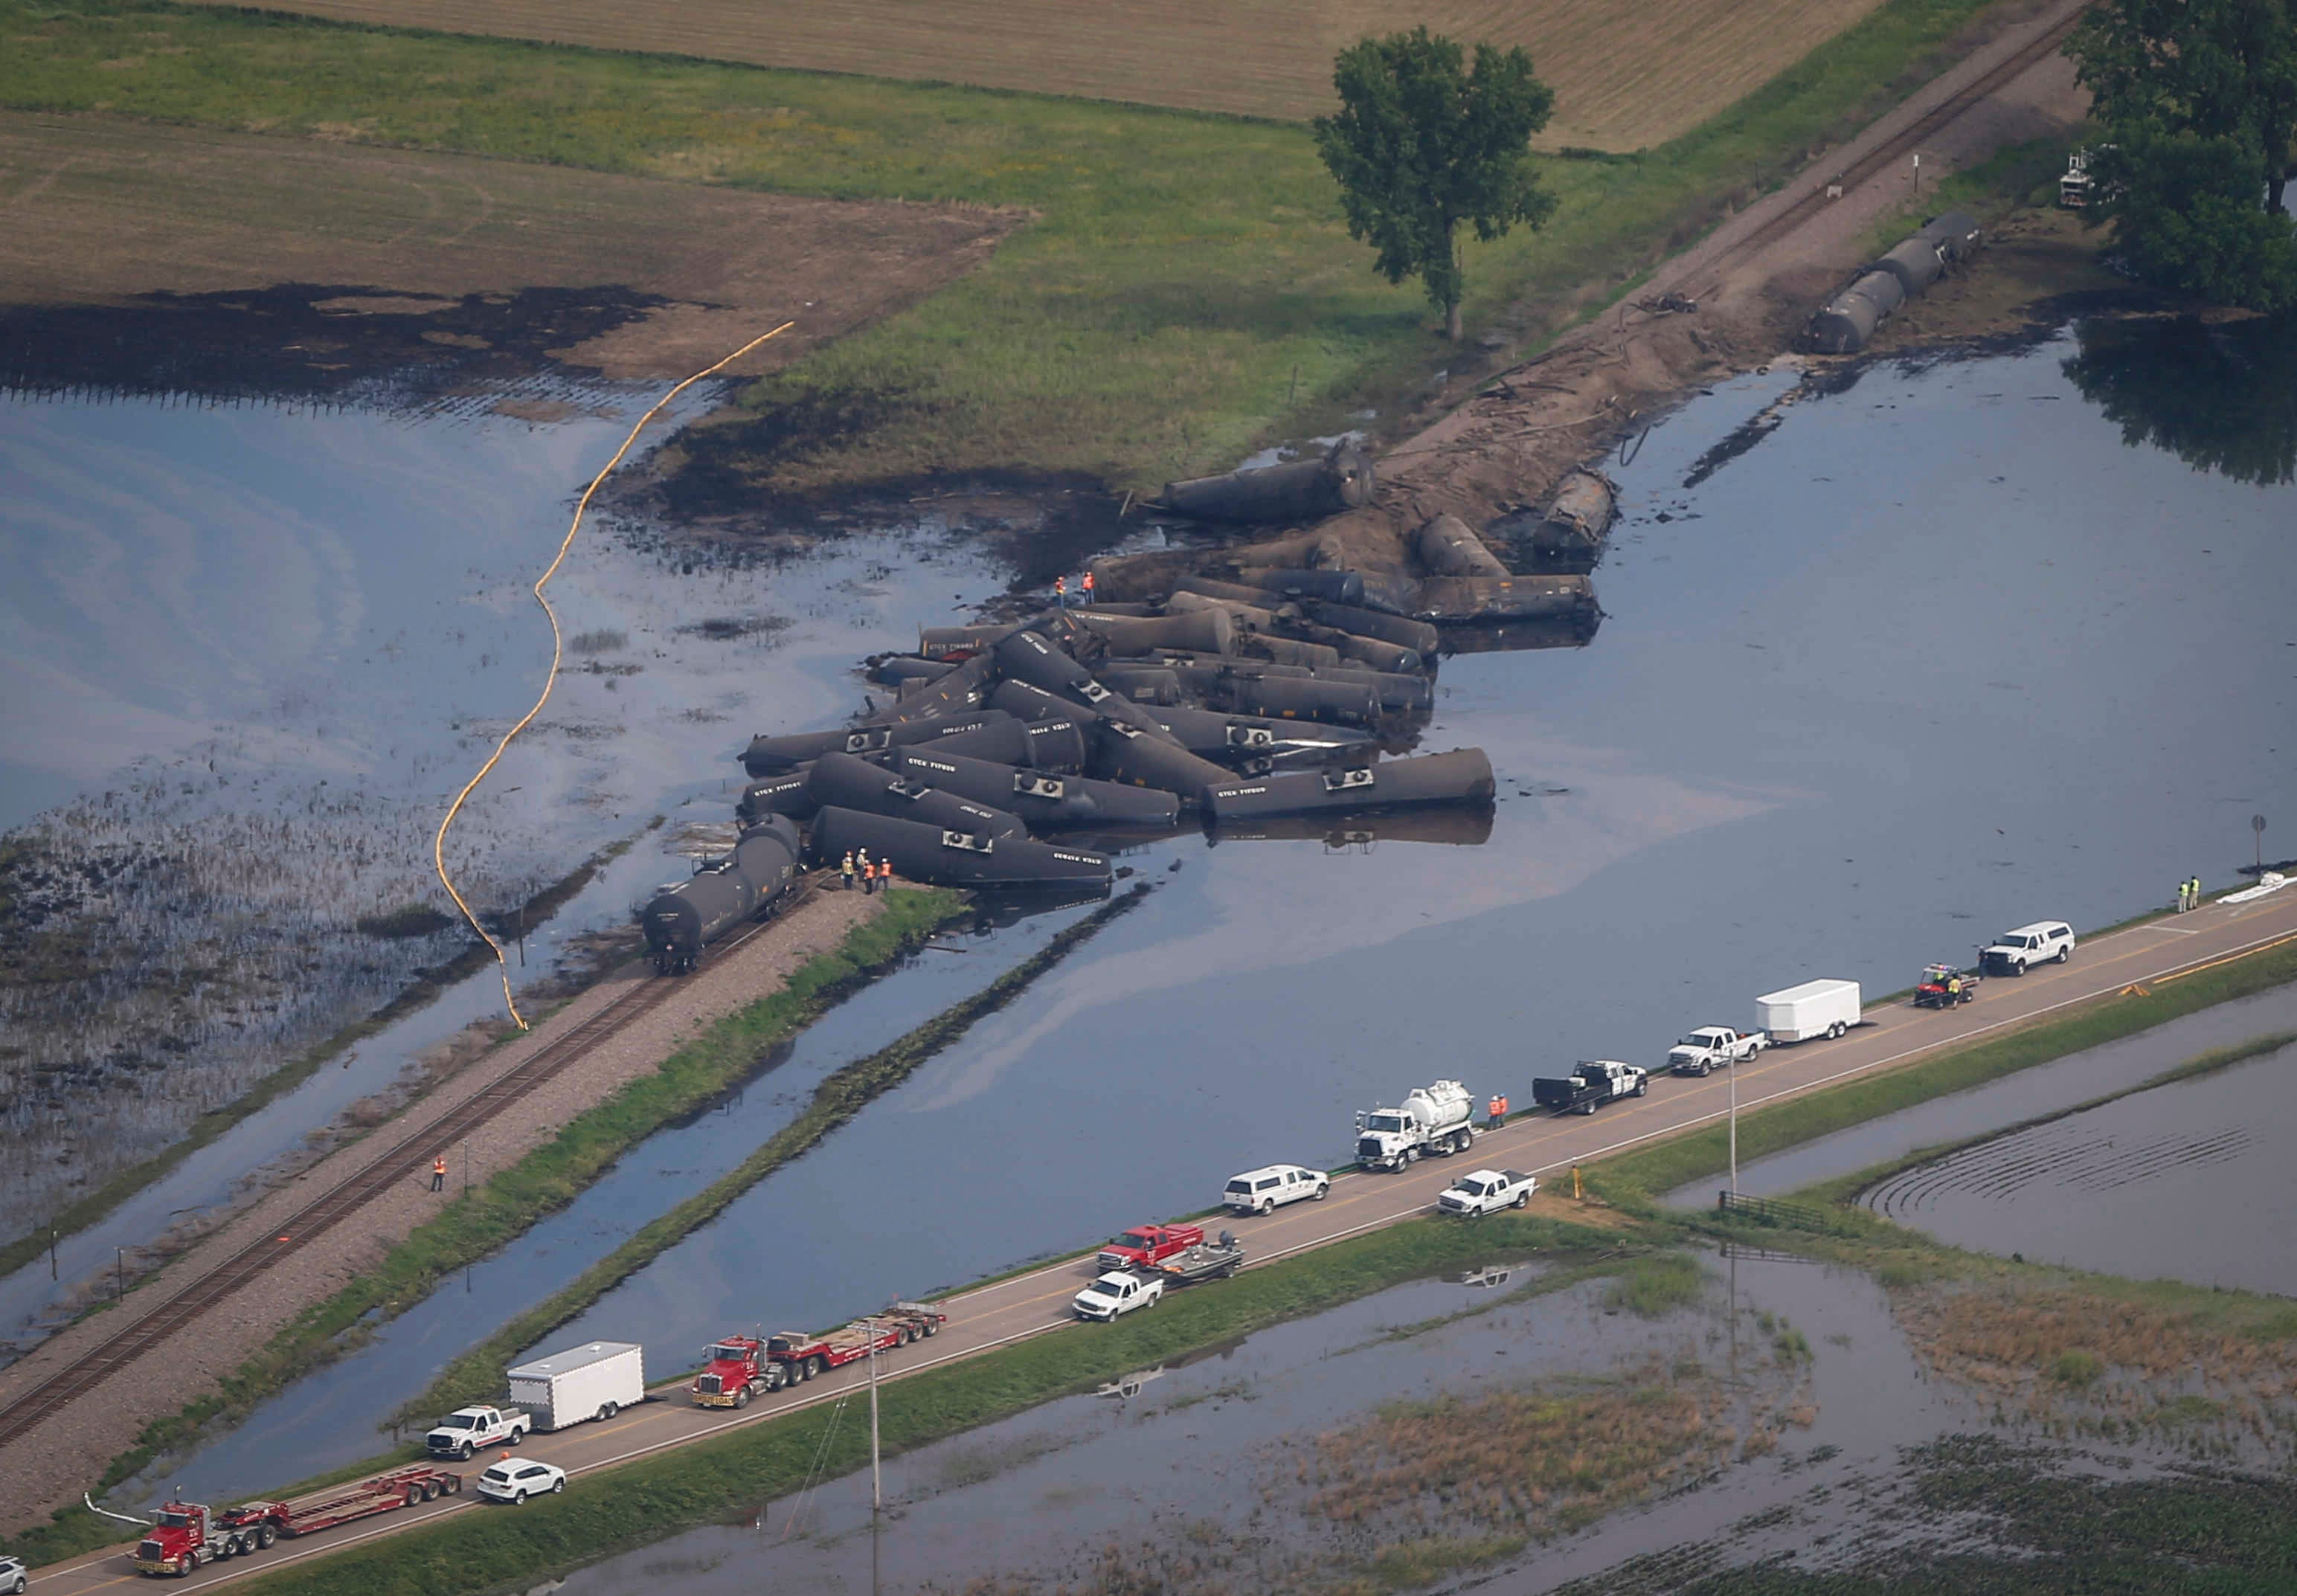 Derailment | The Benicia Independent ~ Eyes on the